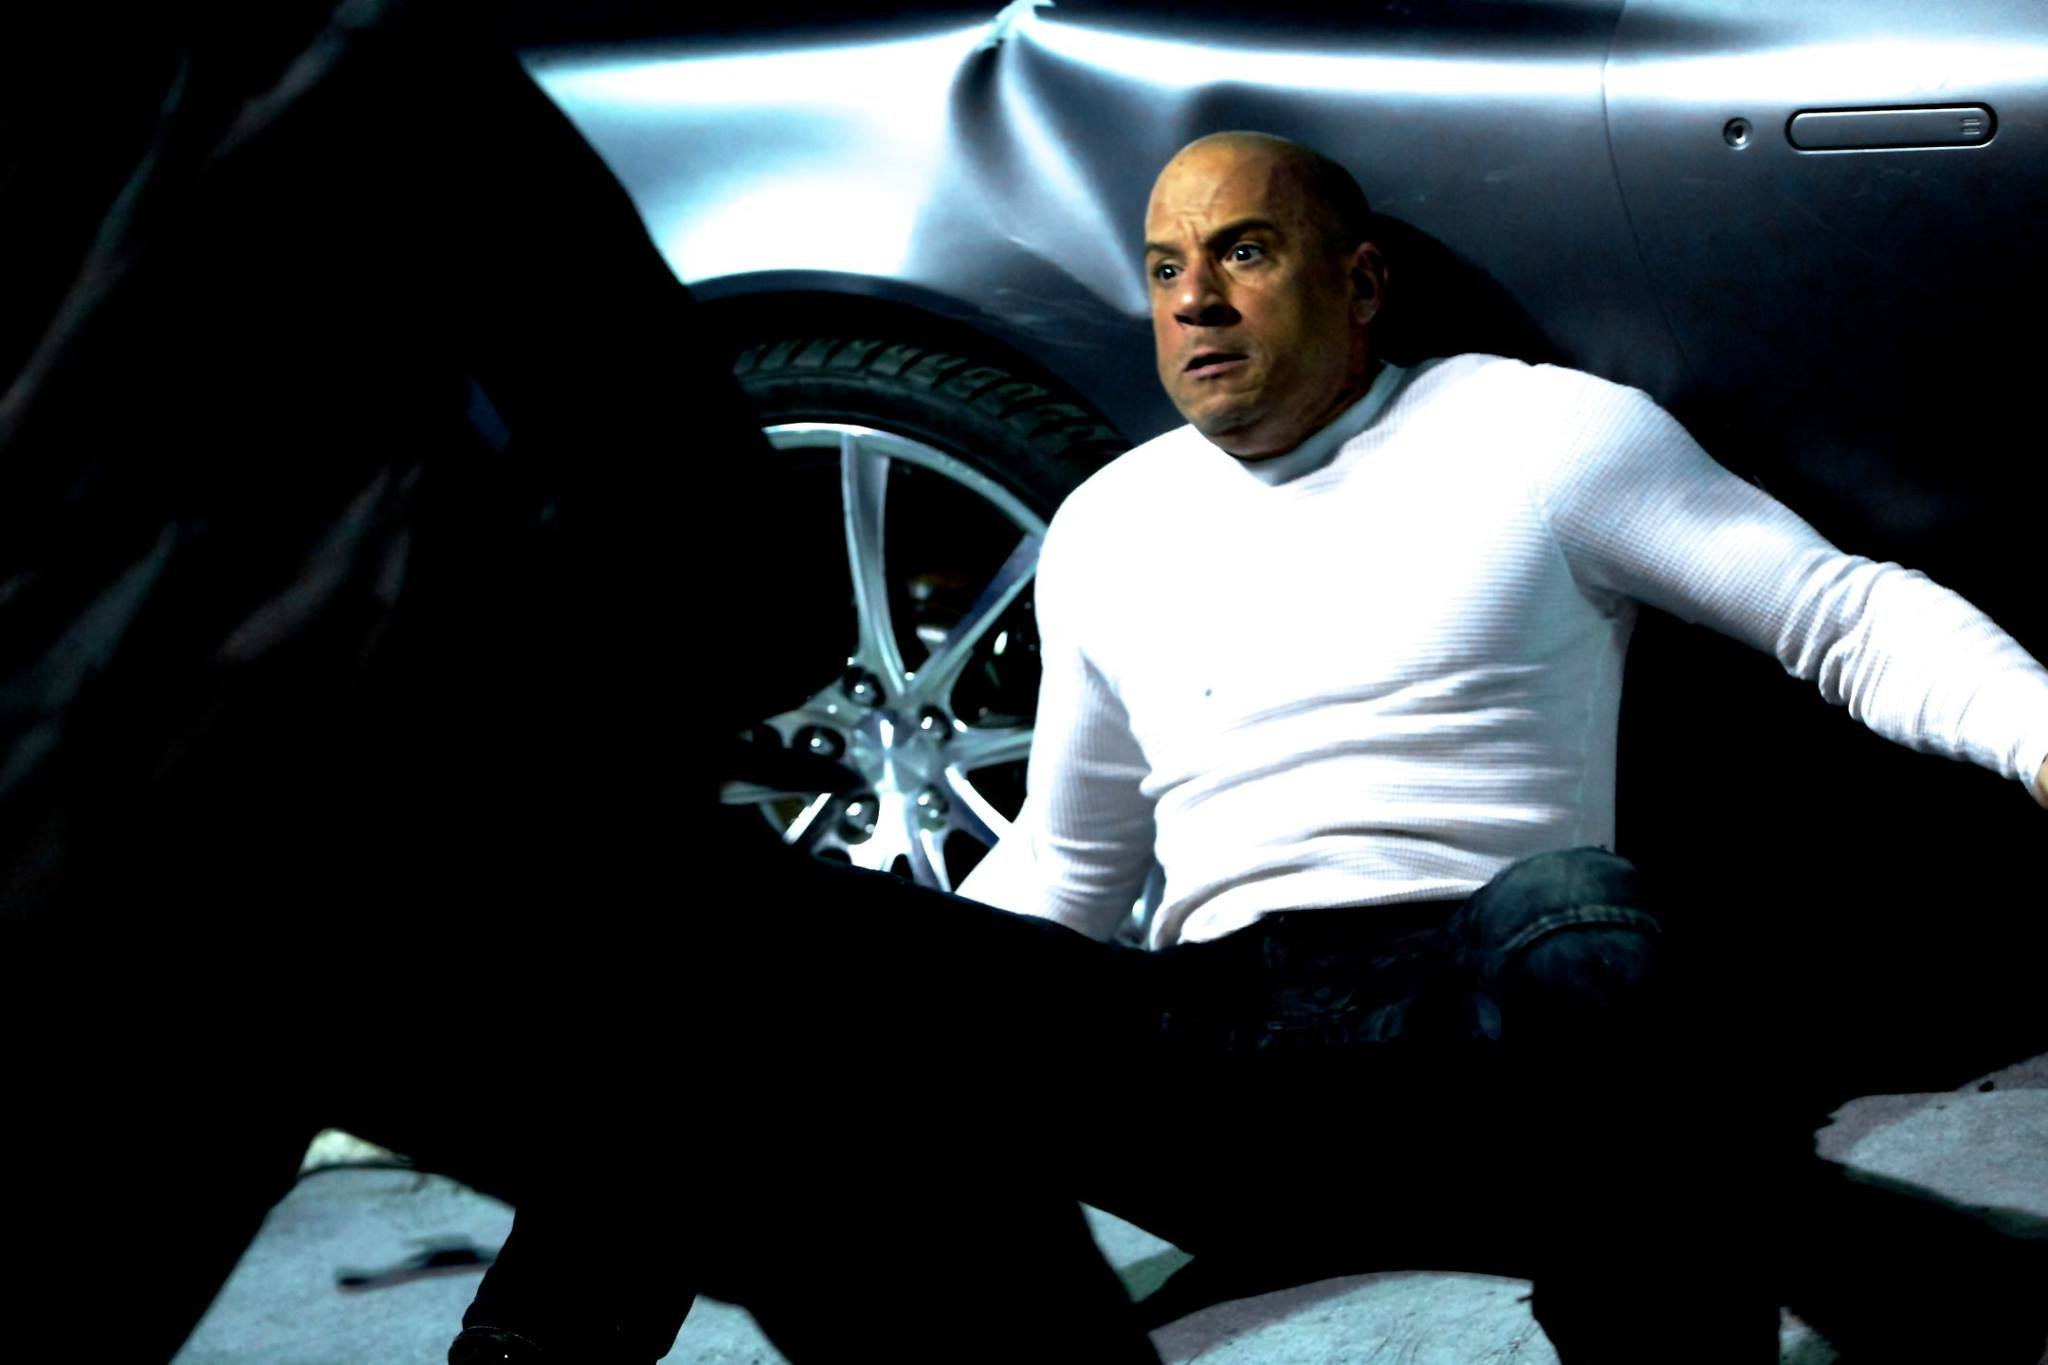 Fast And Furious 6 Cars Hd Wallpaper Fast And Furious Hd Wallpapers Pixelstalk Net